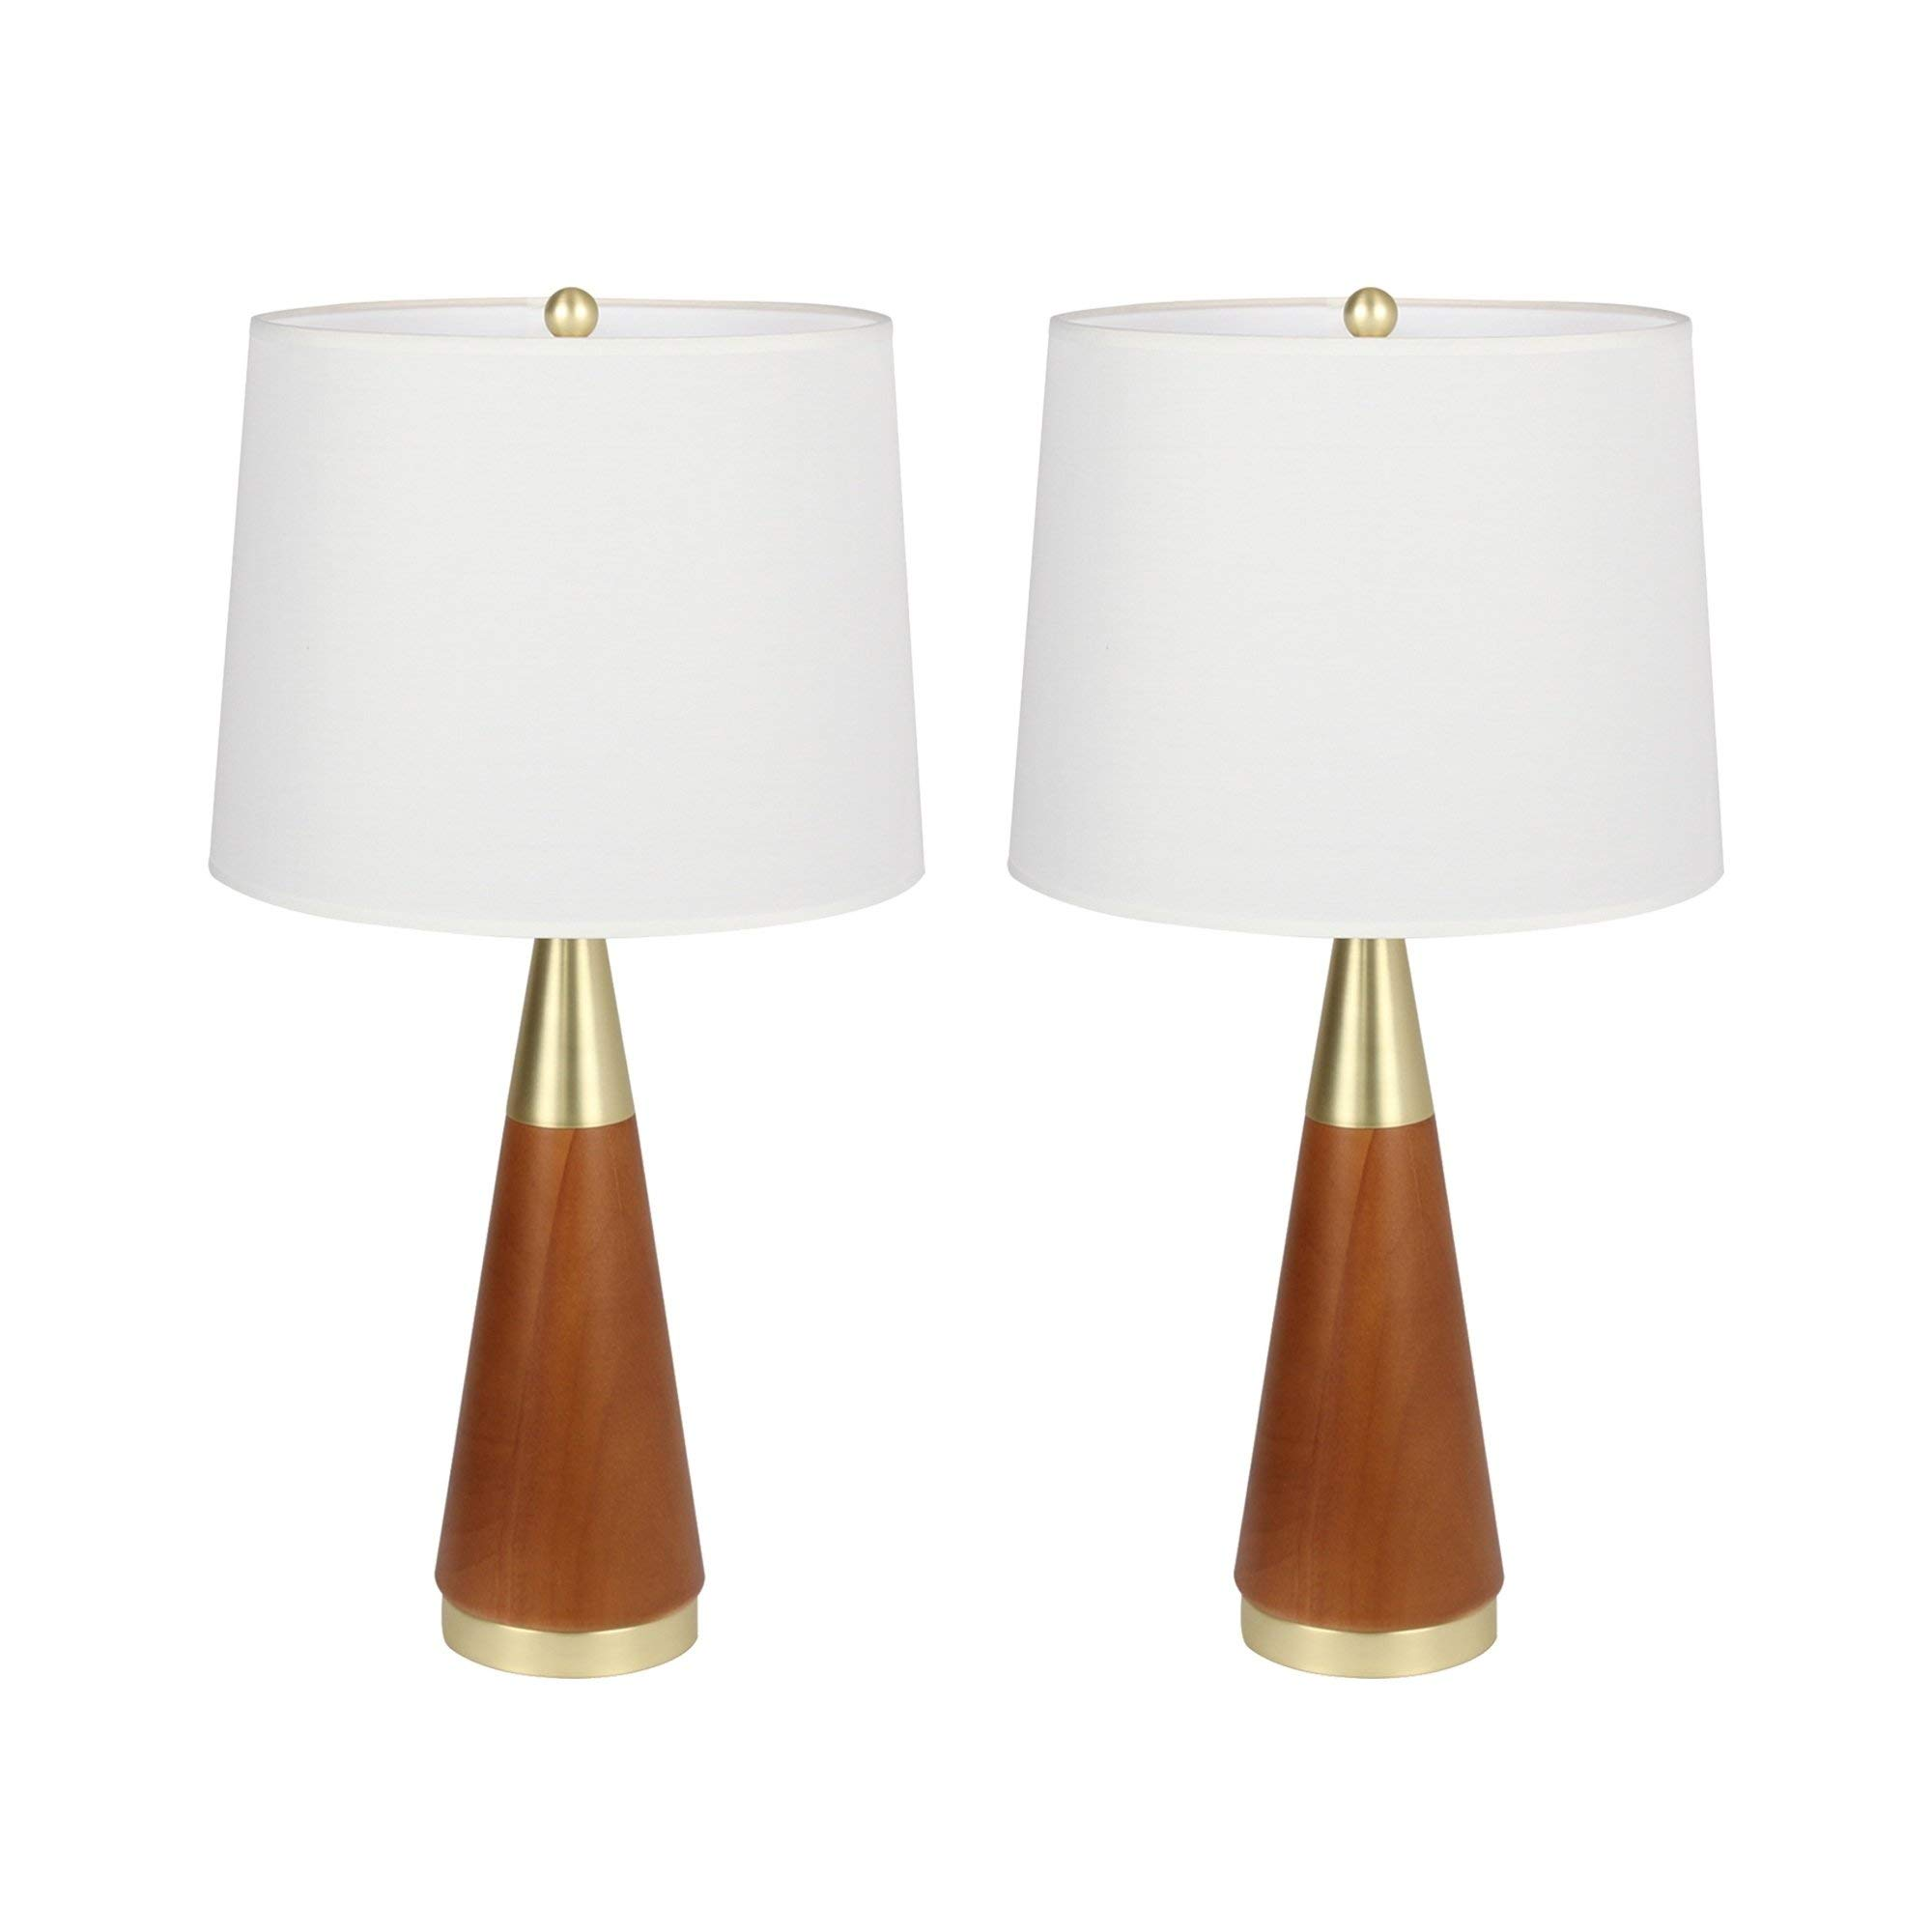 Bestsign Intl White Rubber Wood and Iron Table Lamp Set